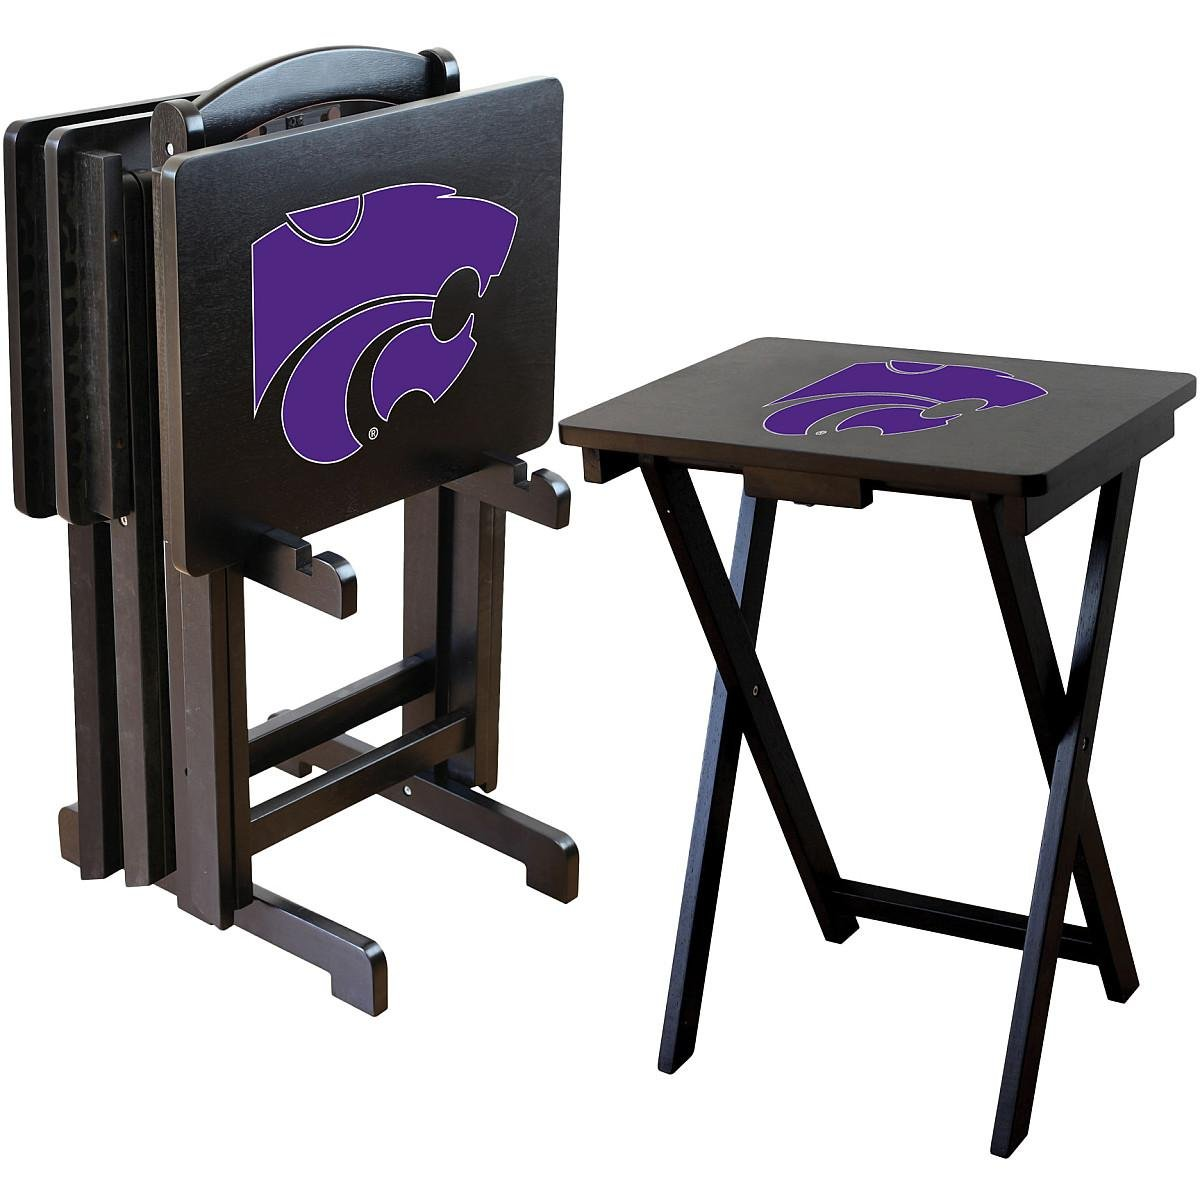 Imperial Officially Licensed NCAA Merchandise: Foldable Wood TV Tray Table Set with Stand, Kansas State Wildcats by Imperial